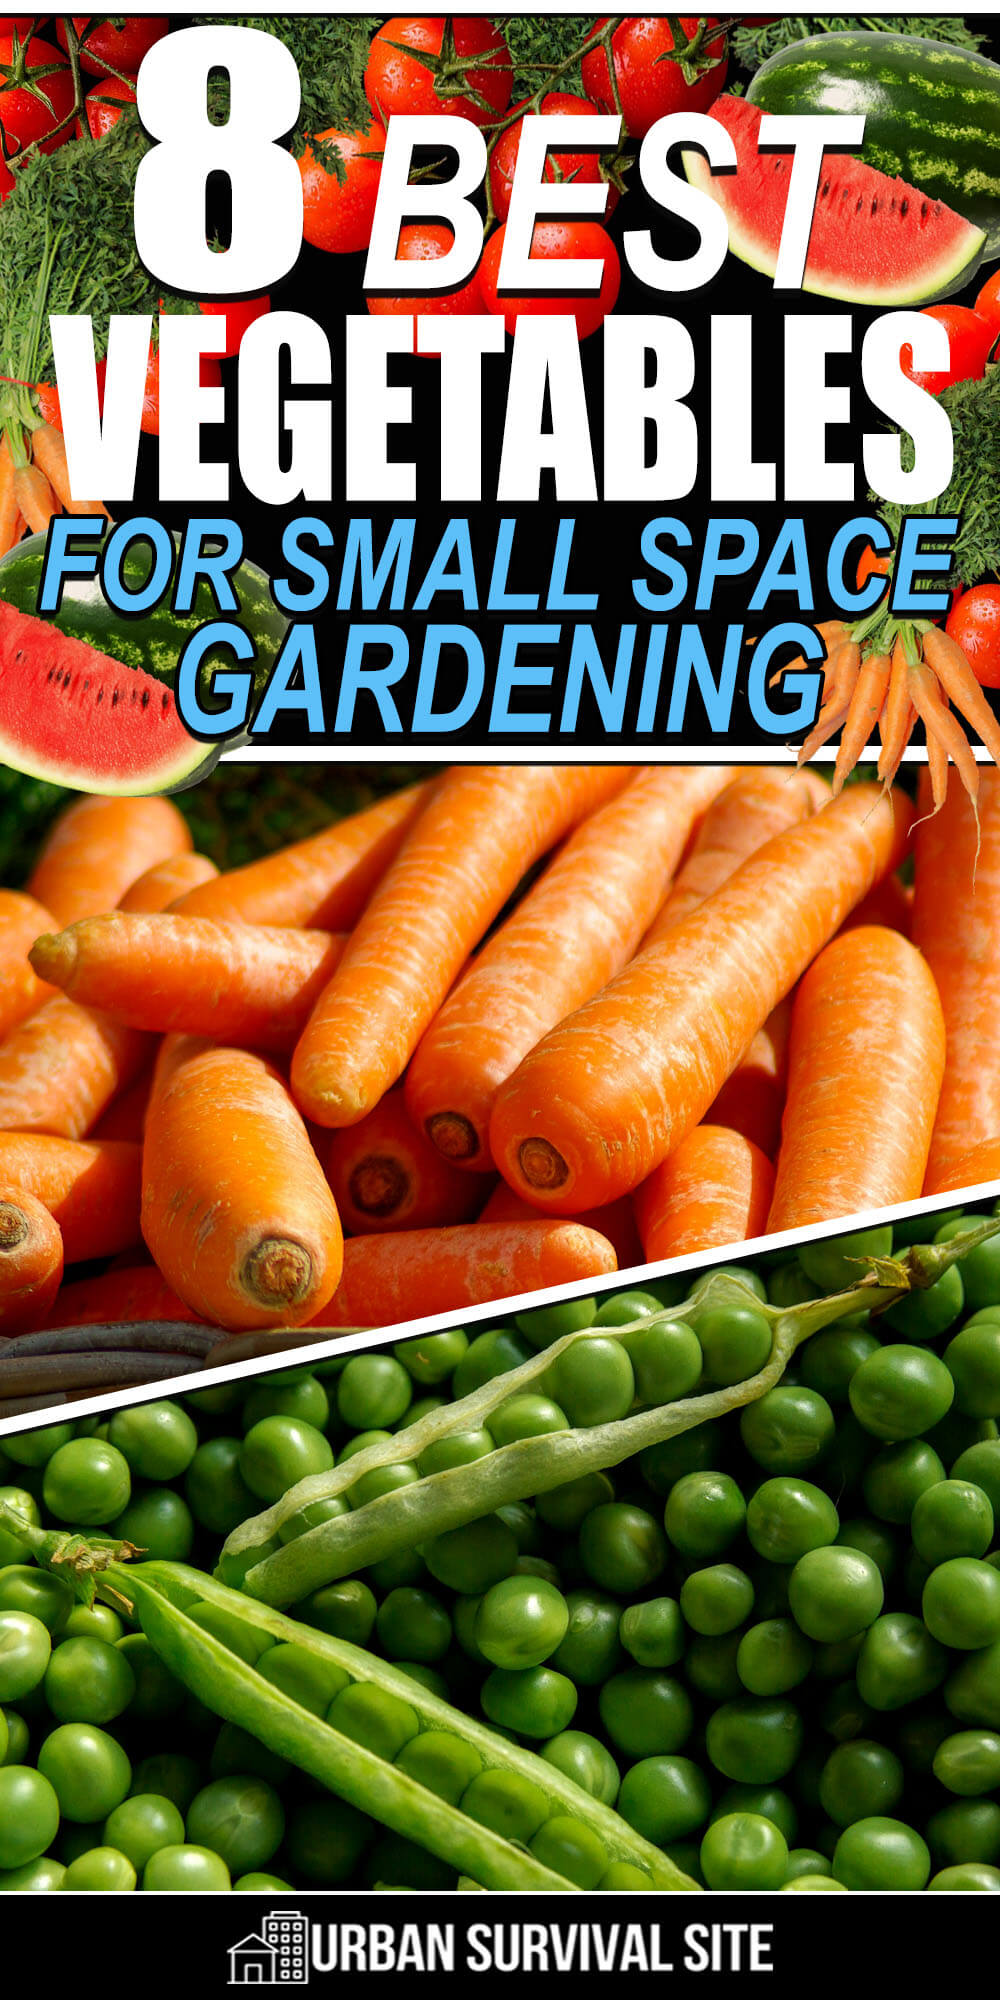 8 Best Vegetables for Small Space Gardening